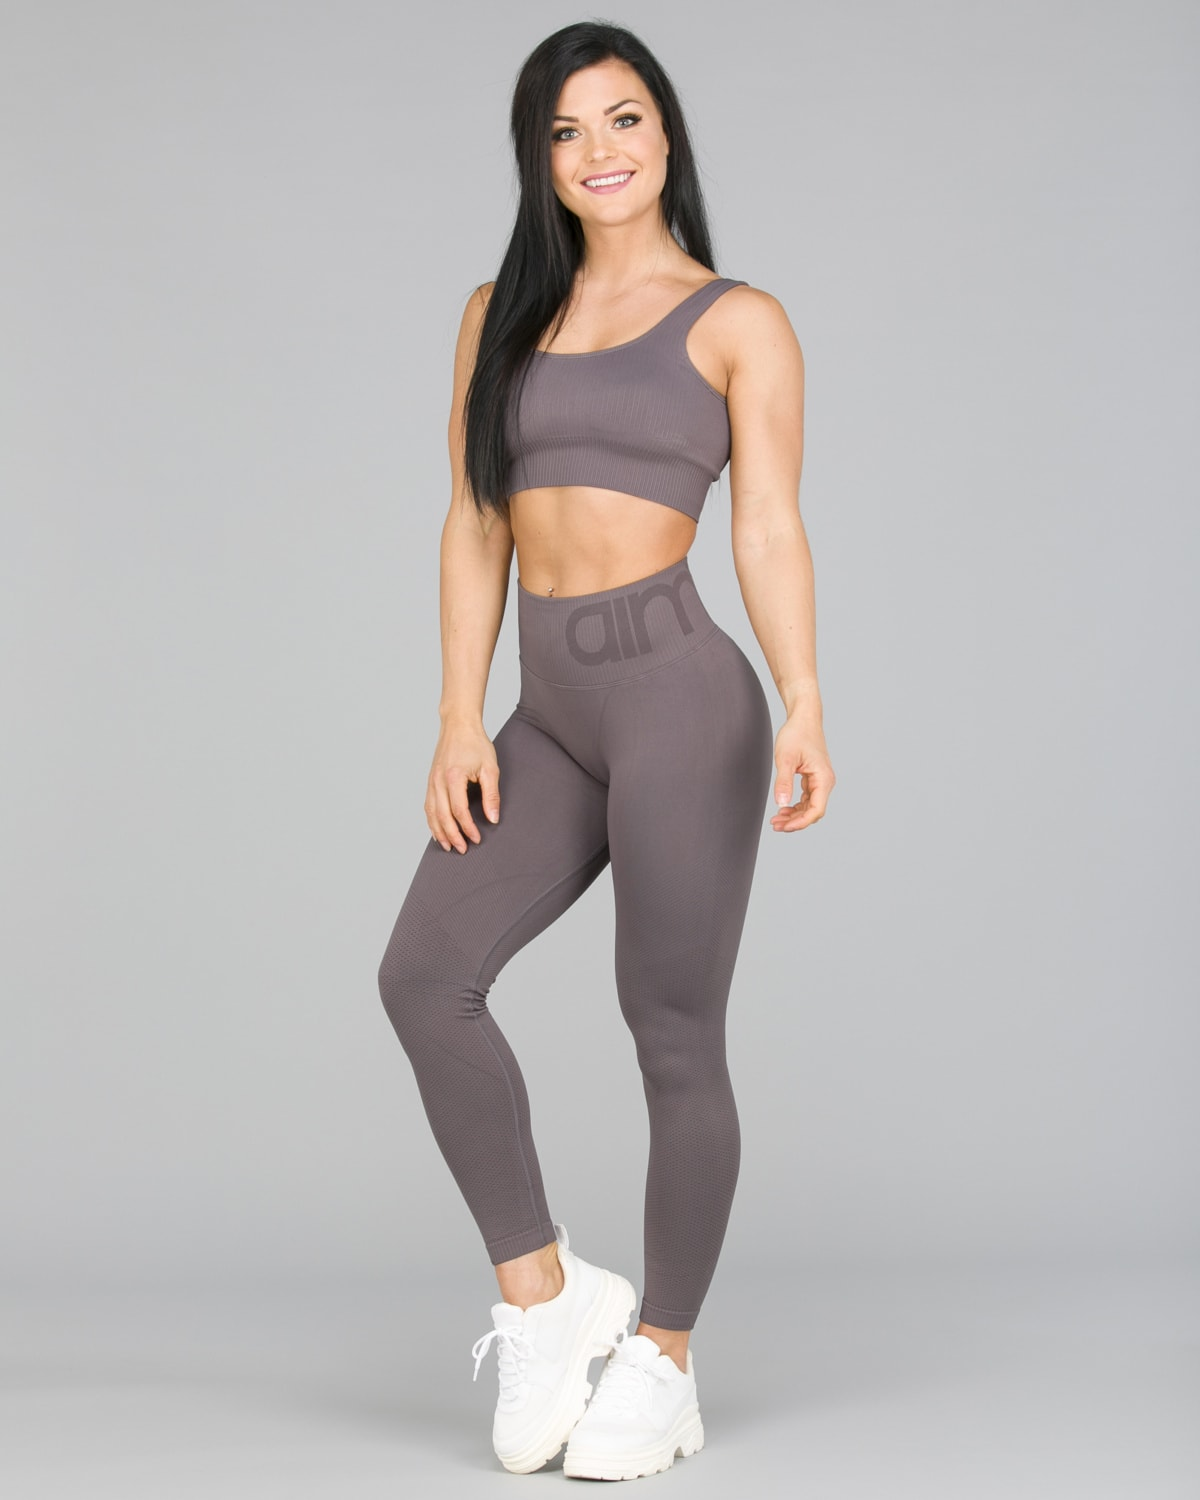 Aim'n Concrete Attention Seamless Tights2_1